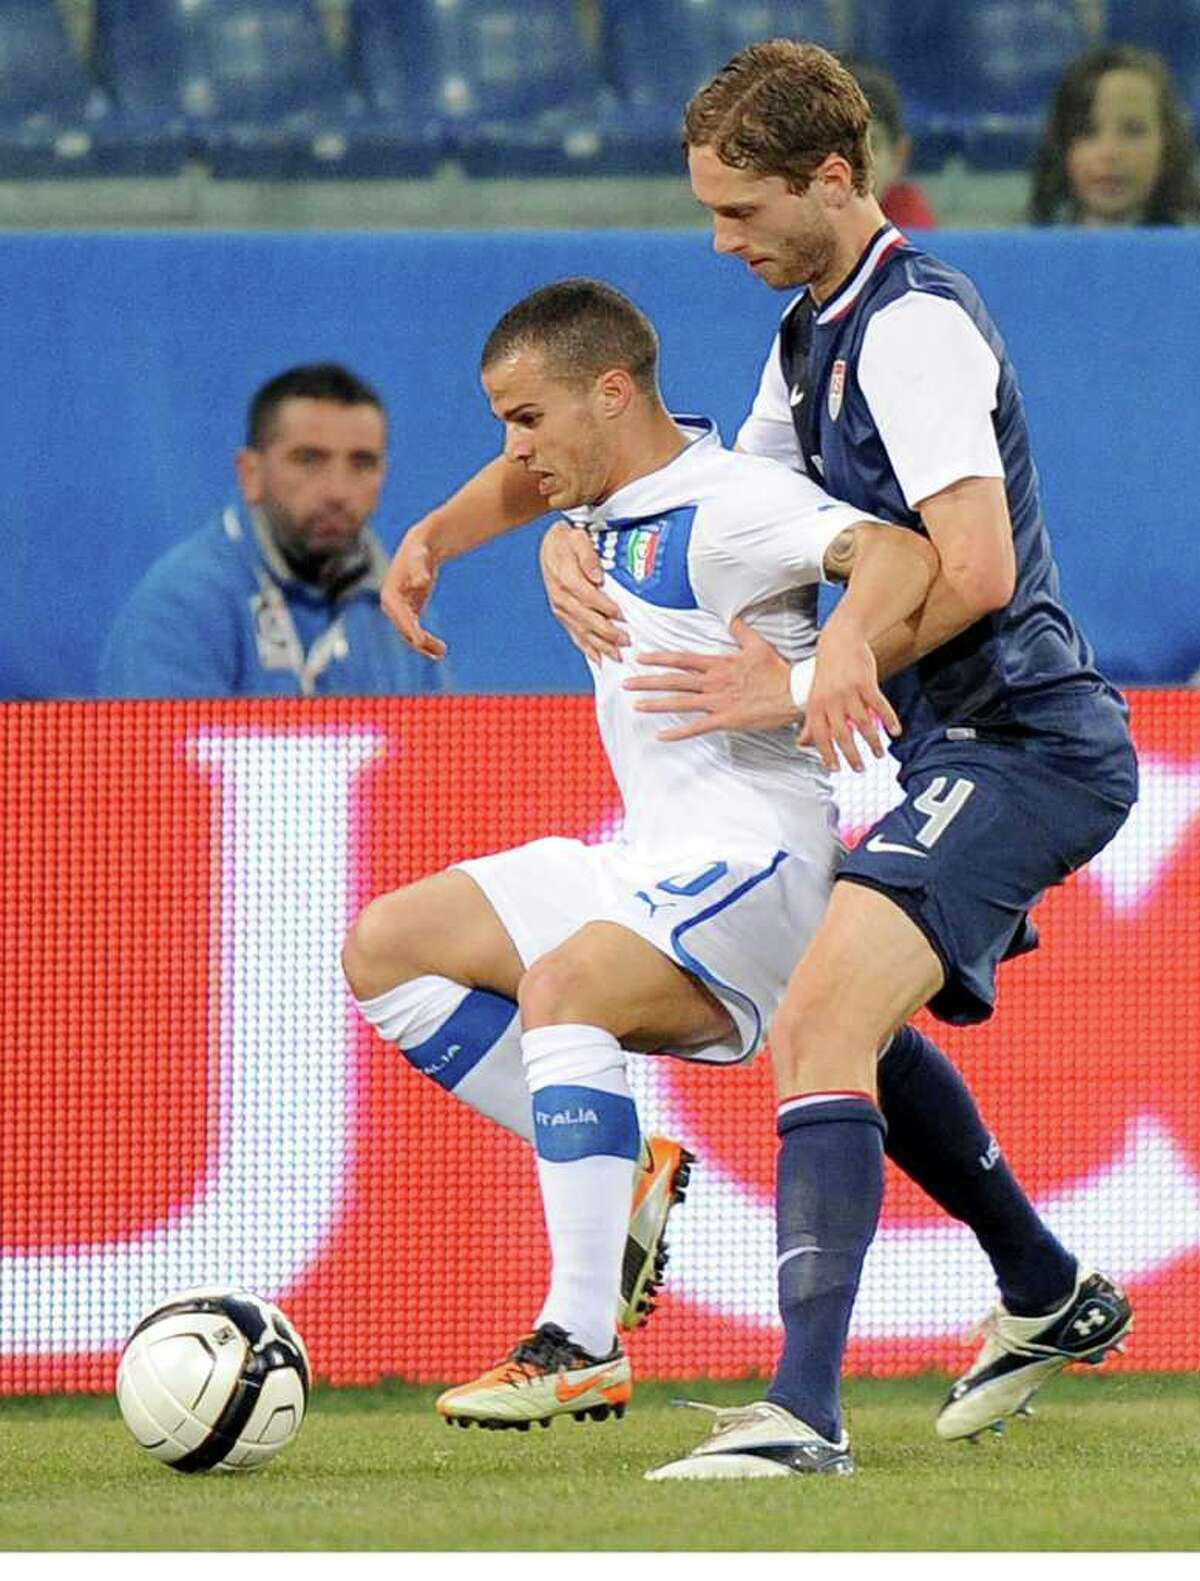 US defender Clarence Goodson, right, and Italy forward Sebastian Giovinco vie for the ball during a friendly soccer match between Italy and USA, at the Genoa Luigi Ferraris stadium, Italy, Wednesday, Feb. 29, 2012. USA won 1-0.